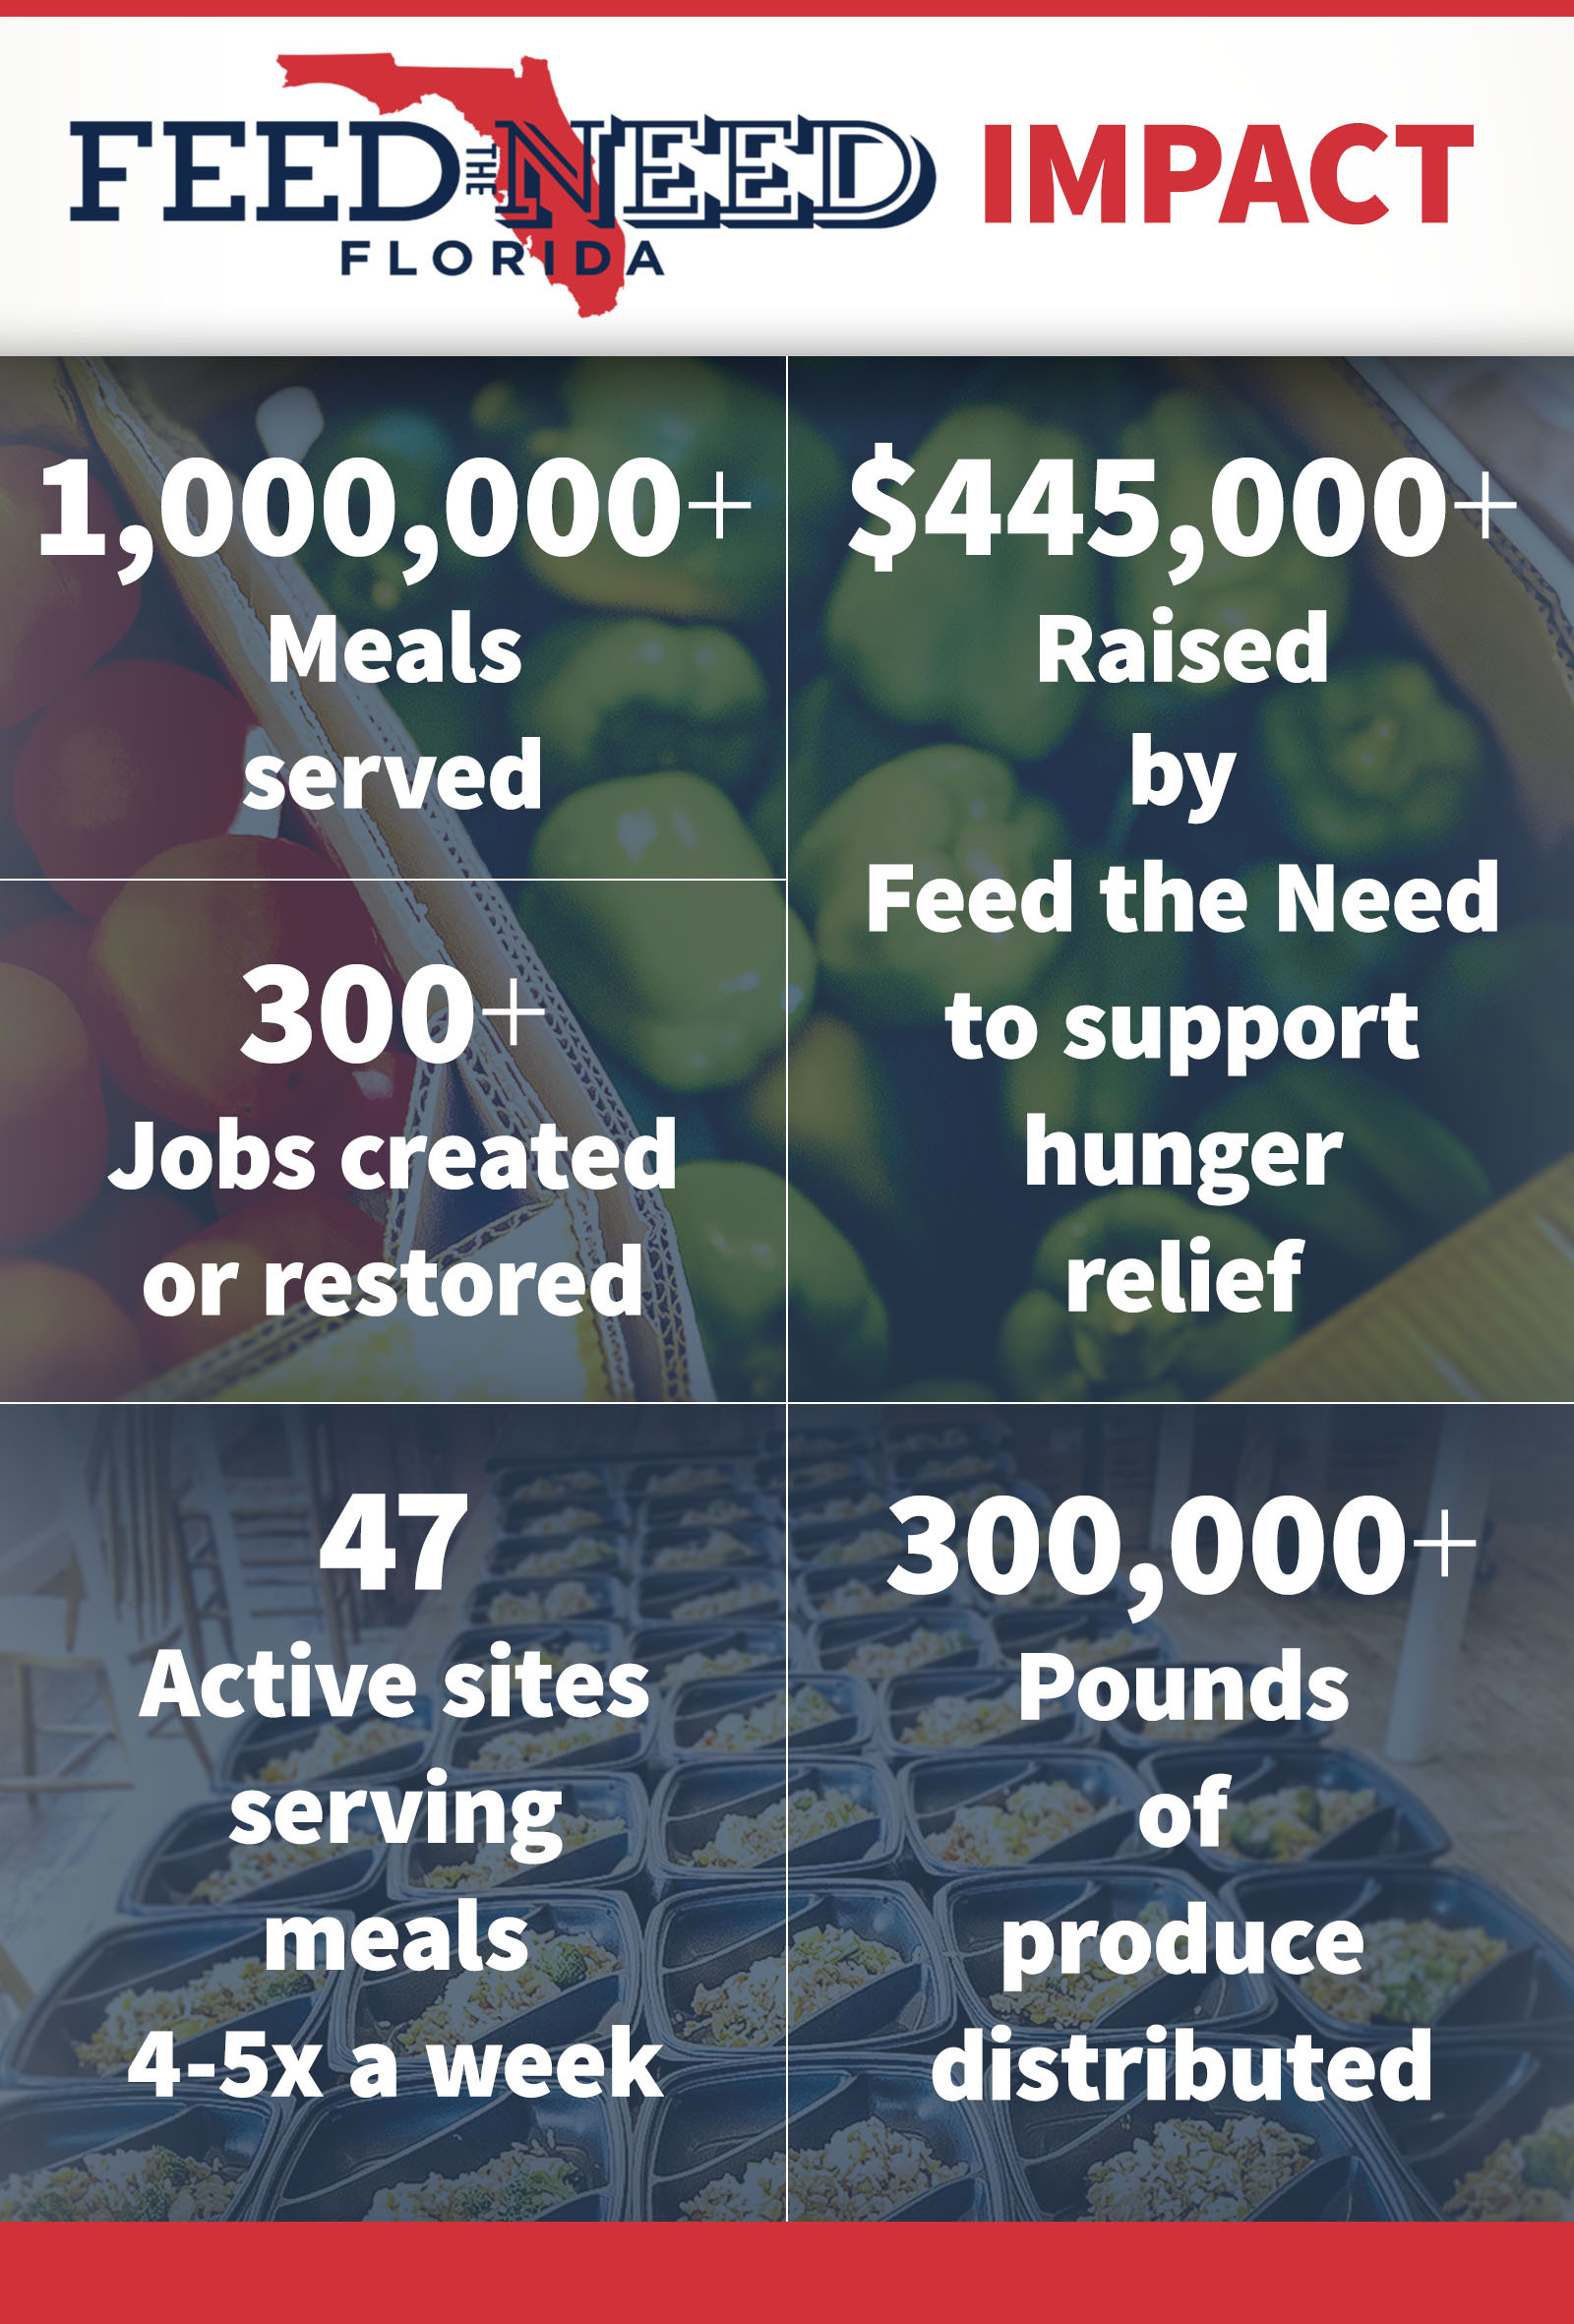 Feed the Need Impact